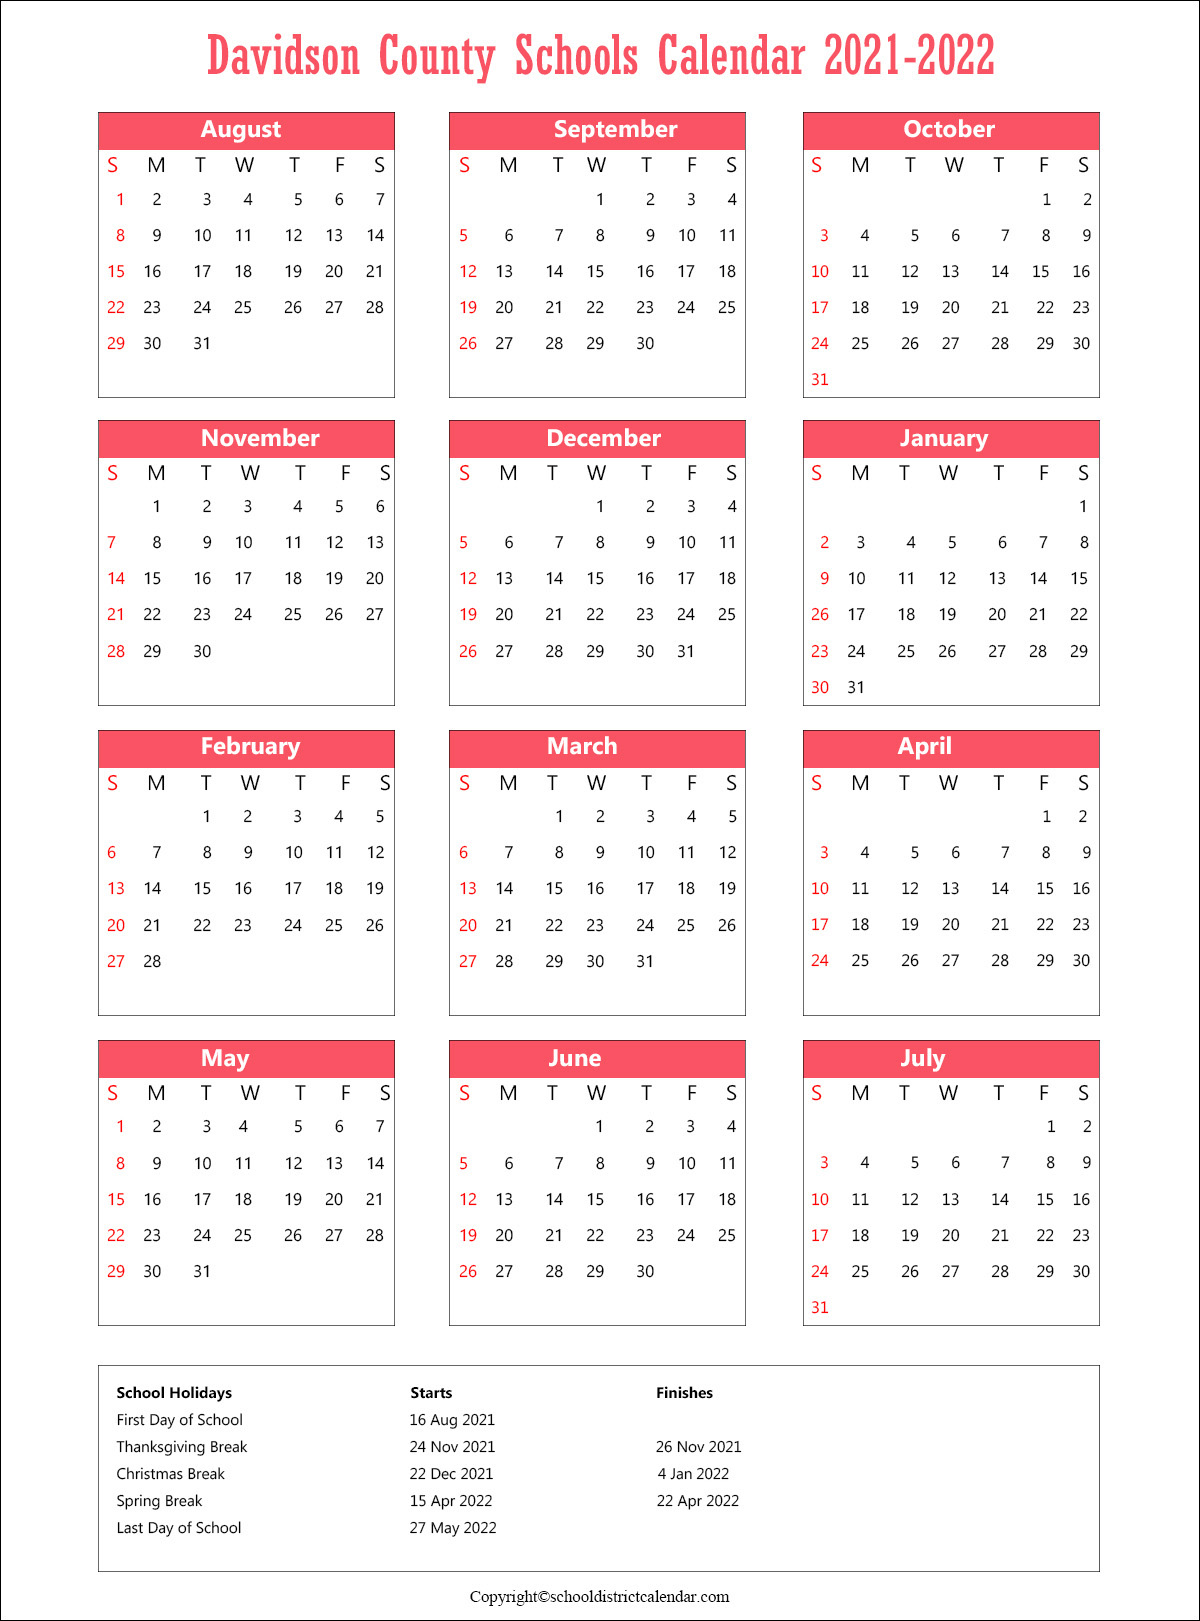 Davidson County Schools District, North Carolina Calendar Holidays 2021